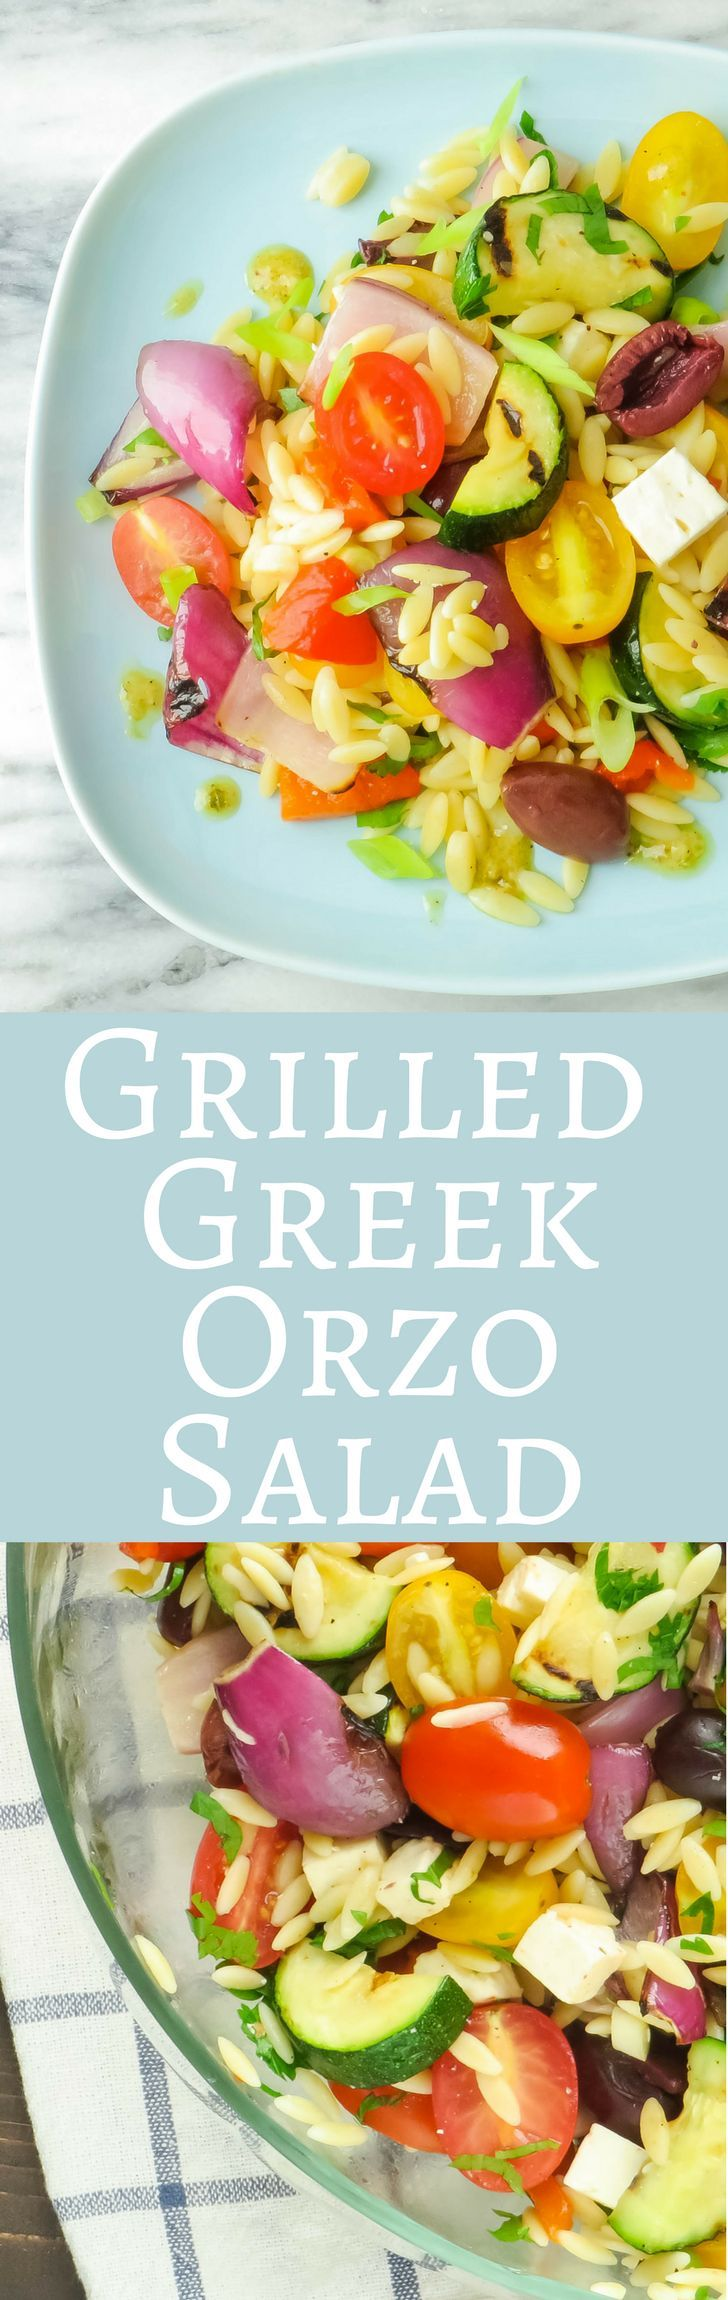 Grilled Greek Orzo Salad | Garlic & Zest